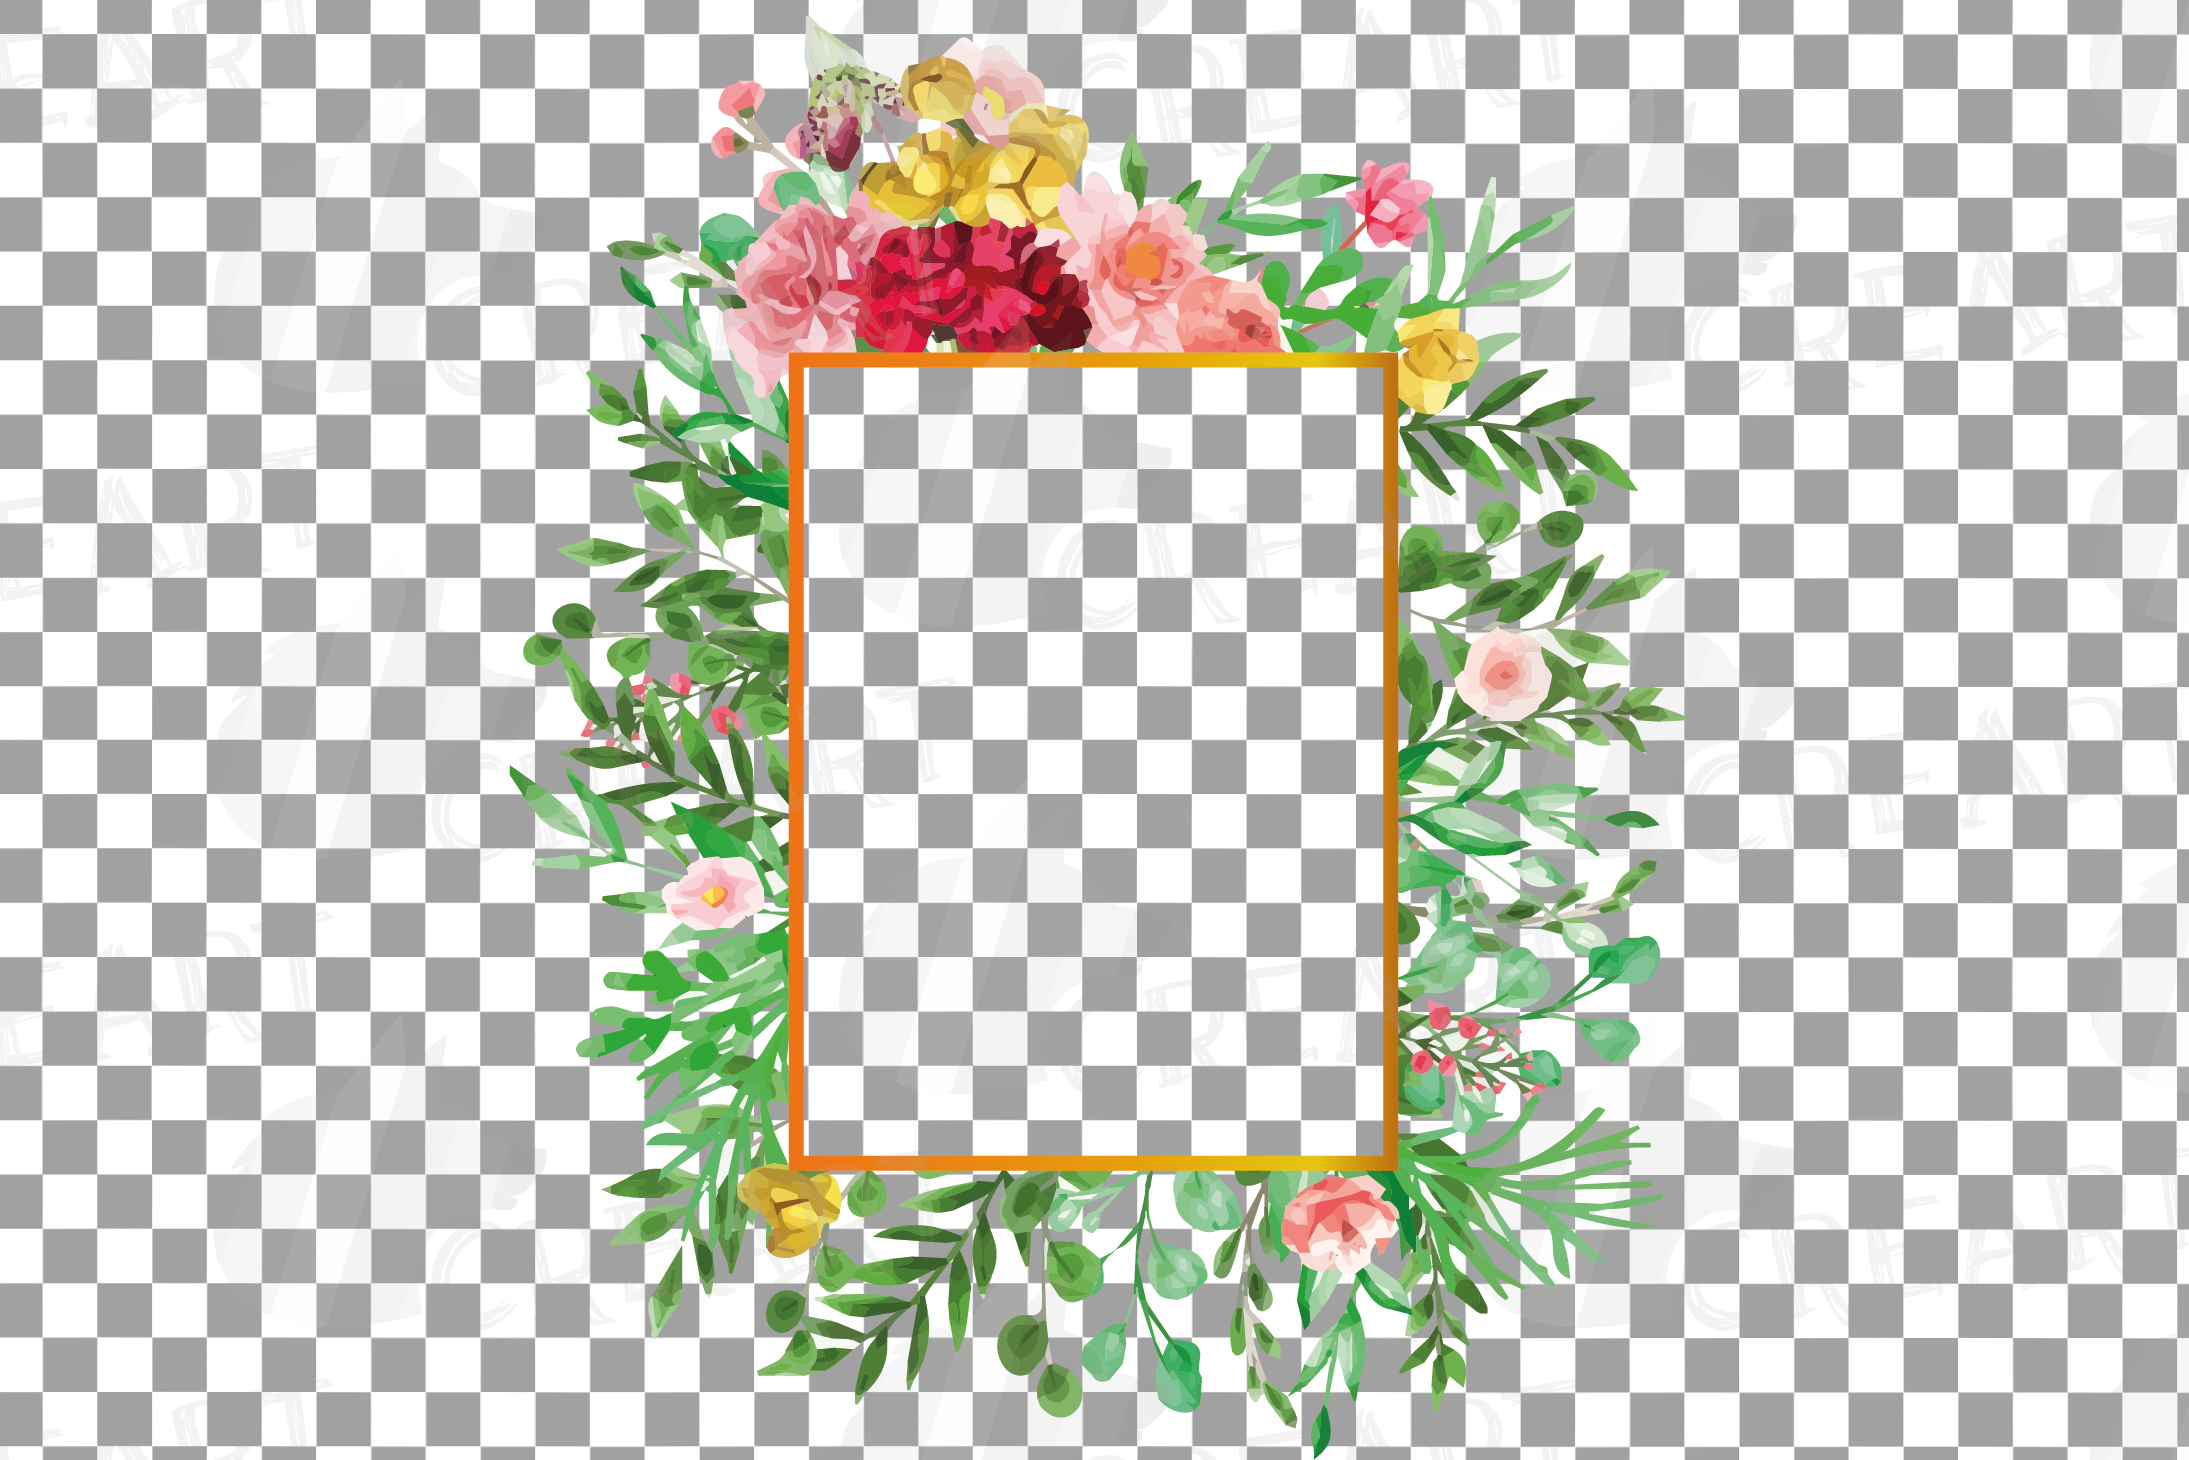 Watercolor floral floral frames and borders clip art pack example image 18